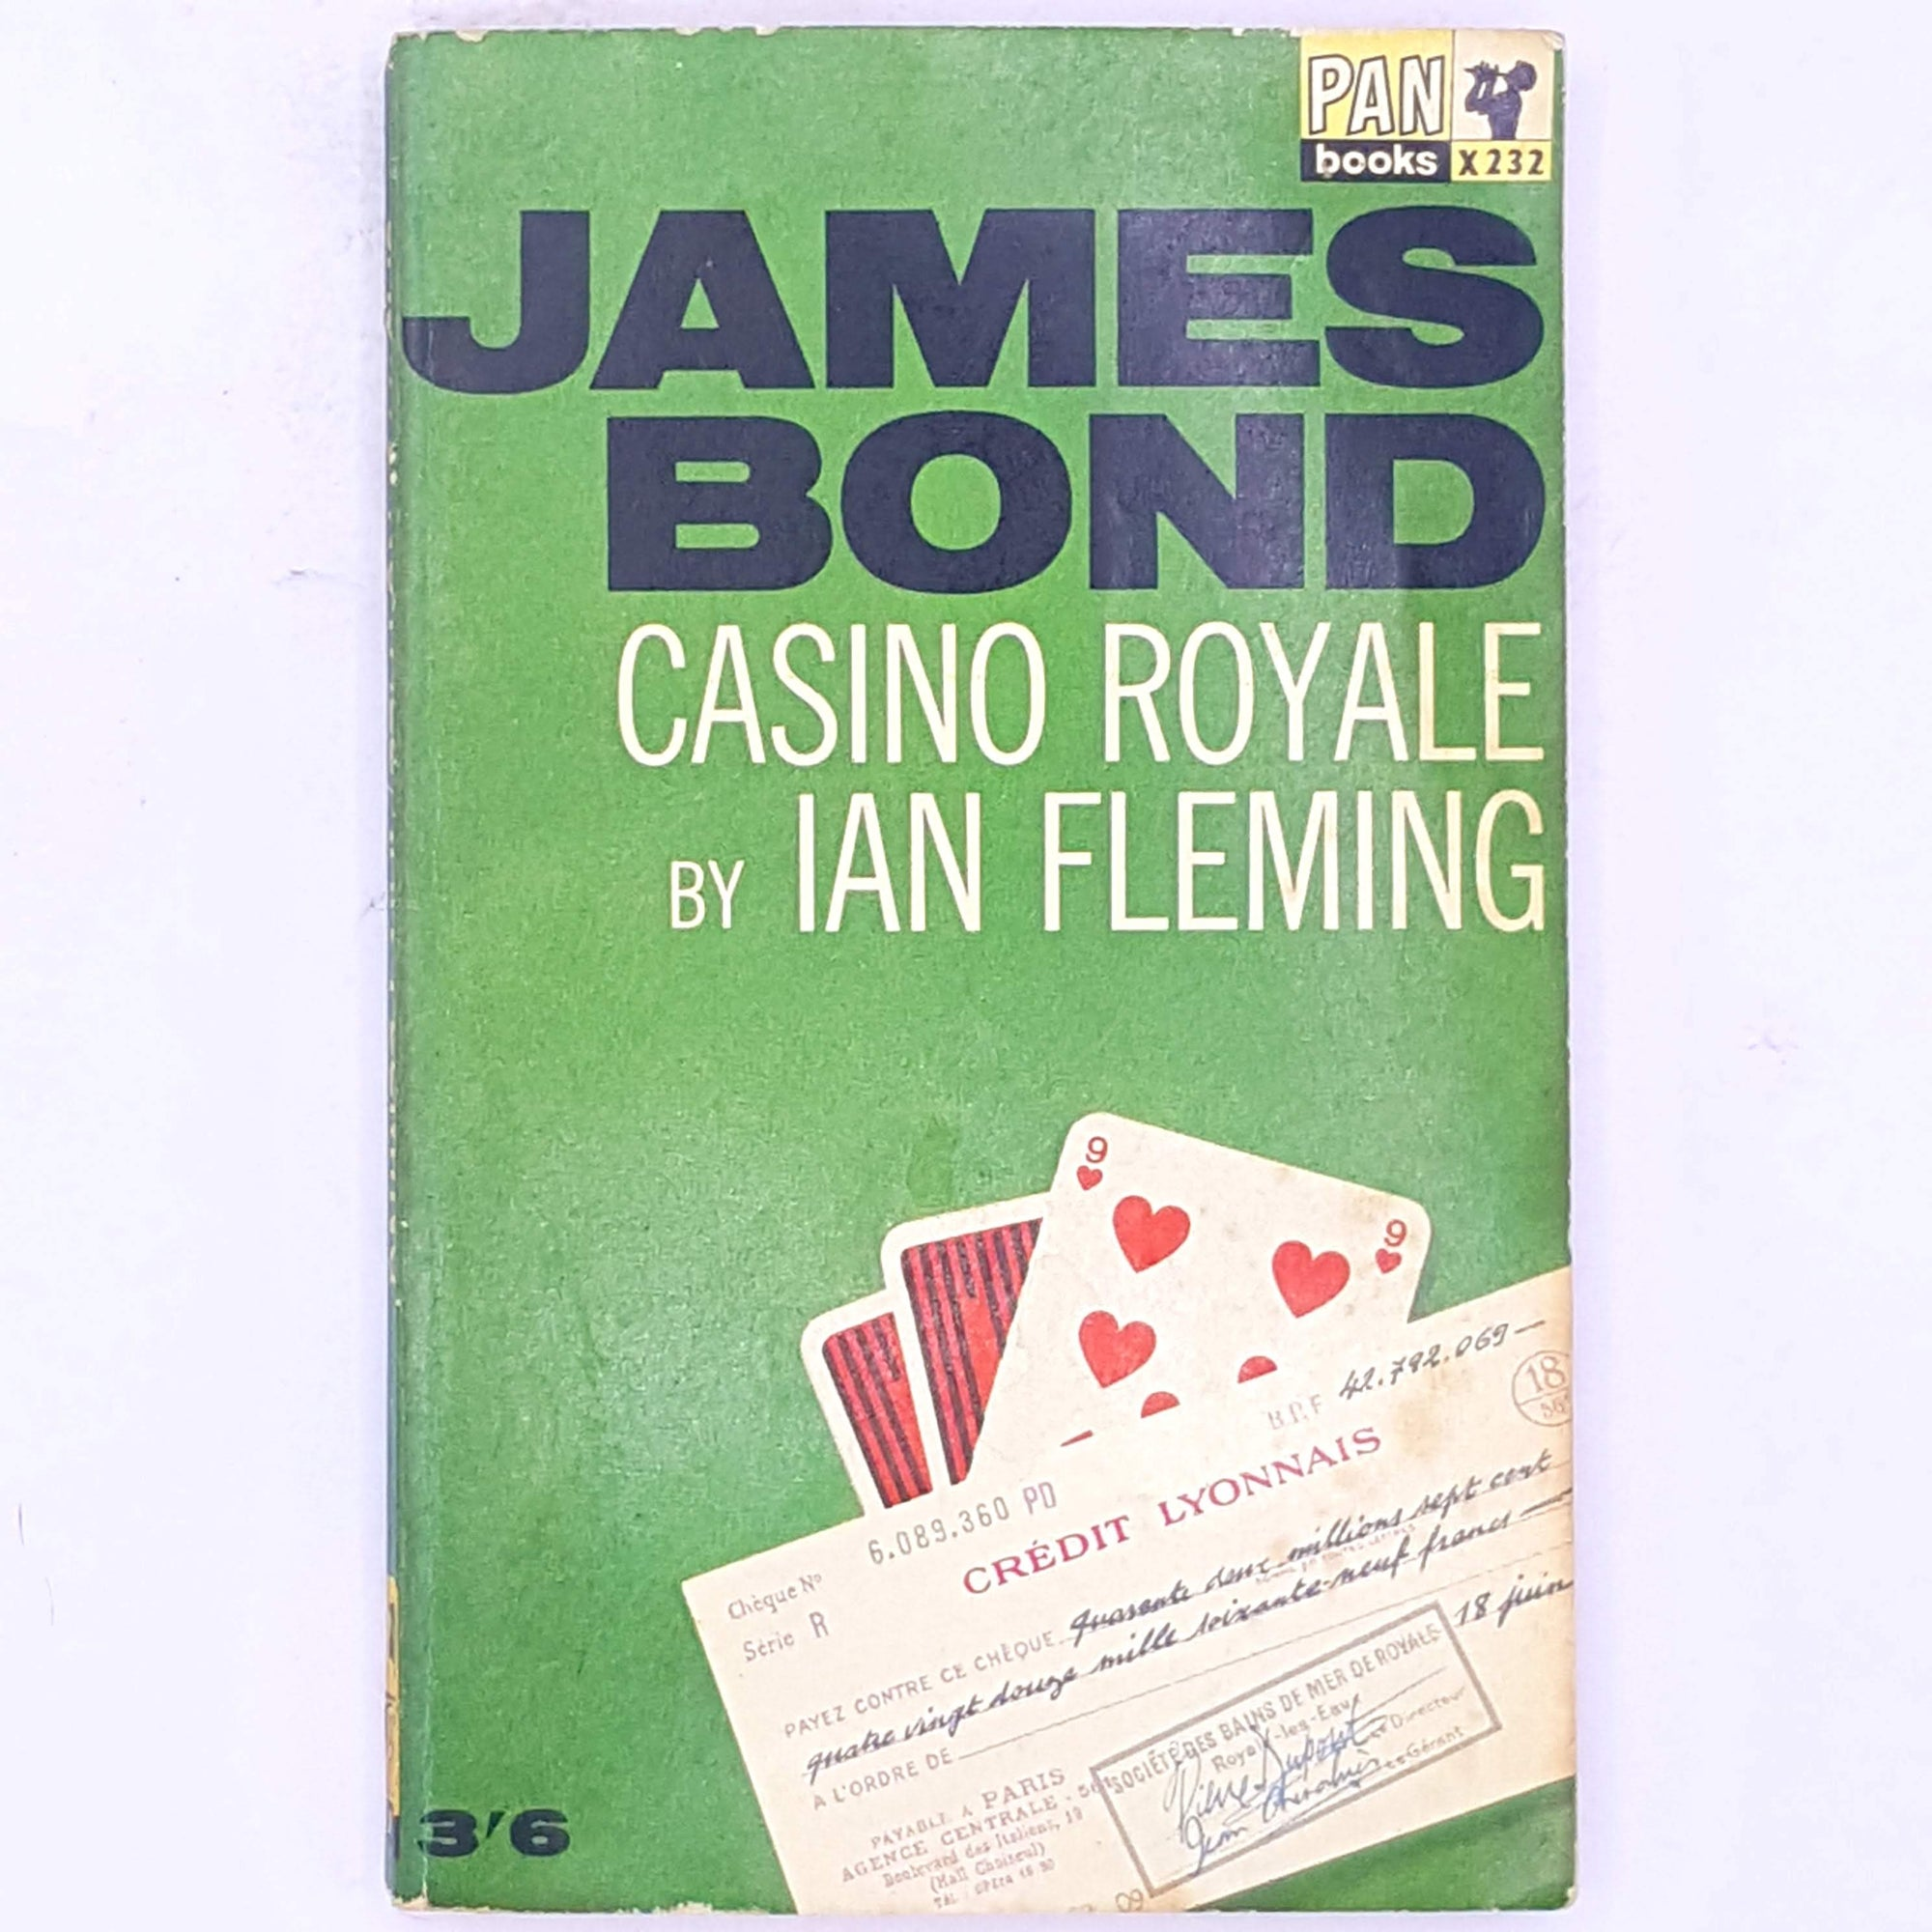 thrift-decorative-007-secret-agent-books-casino-royale-patterned-vintage-James-Bond-country-house-library-classic-antique-old-spy-ian-fleming-mystery-